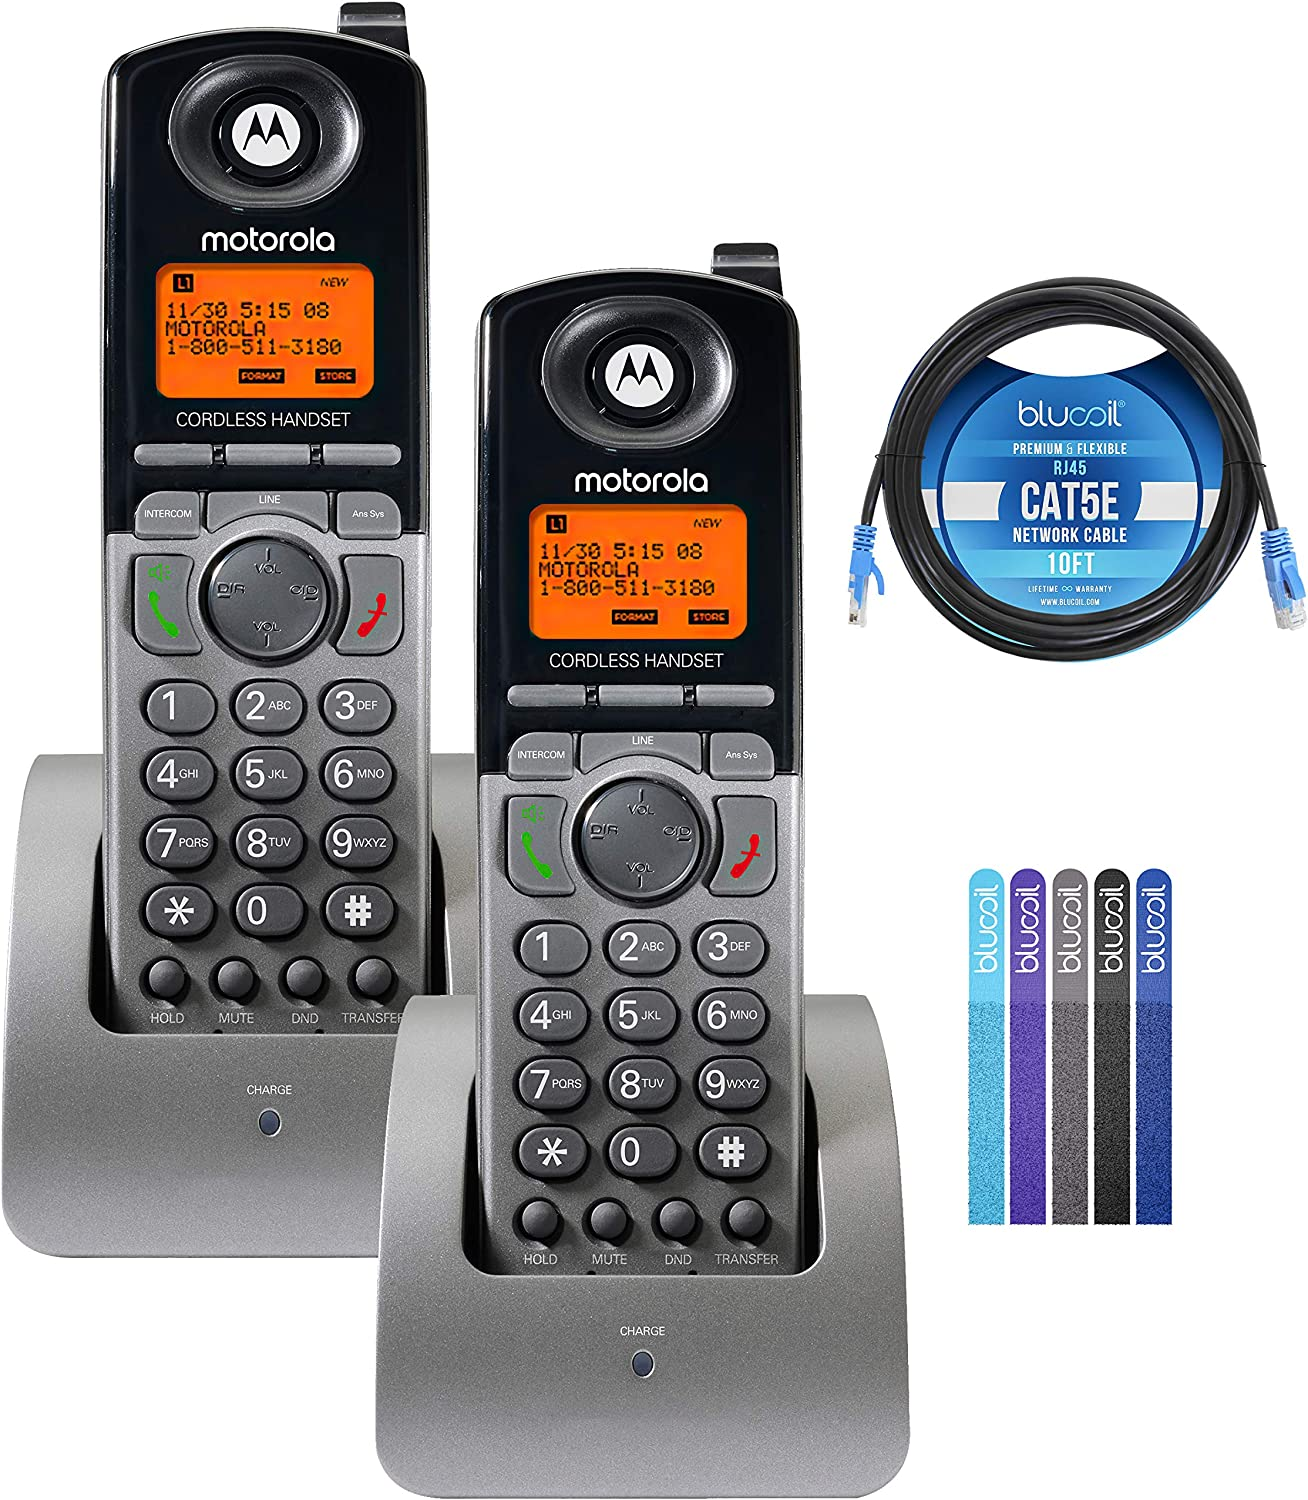 Motorola ML1200 DECT 6.0 Expandable 4-Line Cordless Handsets with Digital Receptionist and Voicemail (2-Pack) Bundle with Blucoil 10-FT 1 Gbps Cat5e Cable, and Reusable Cable Ties (5-Pack)